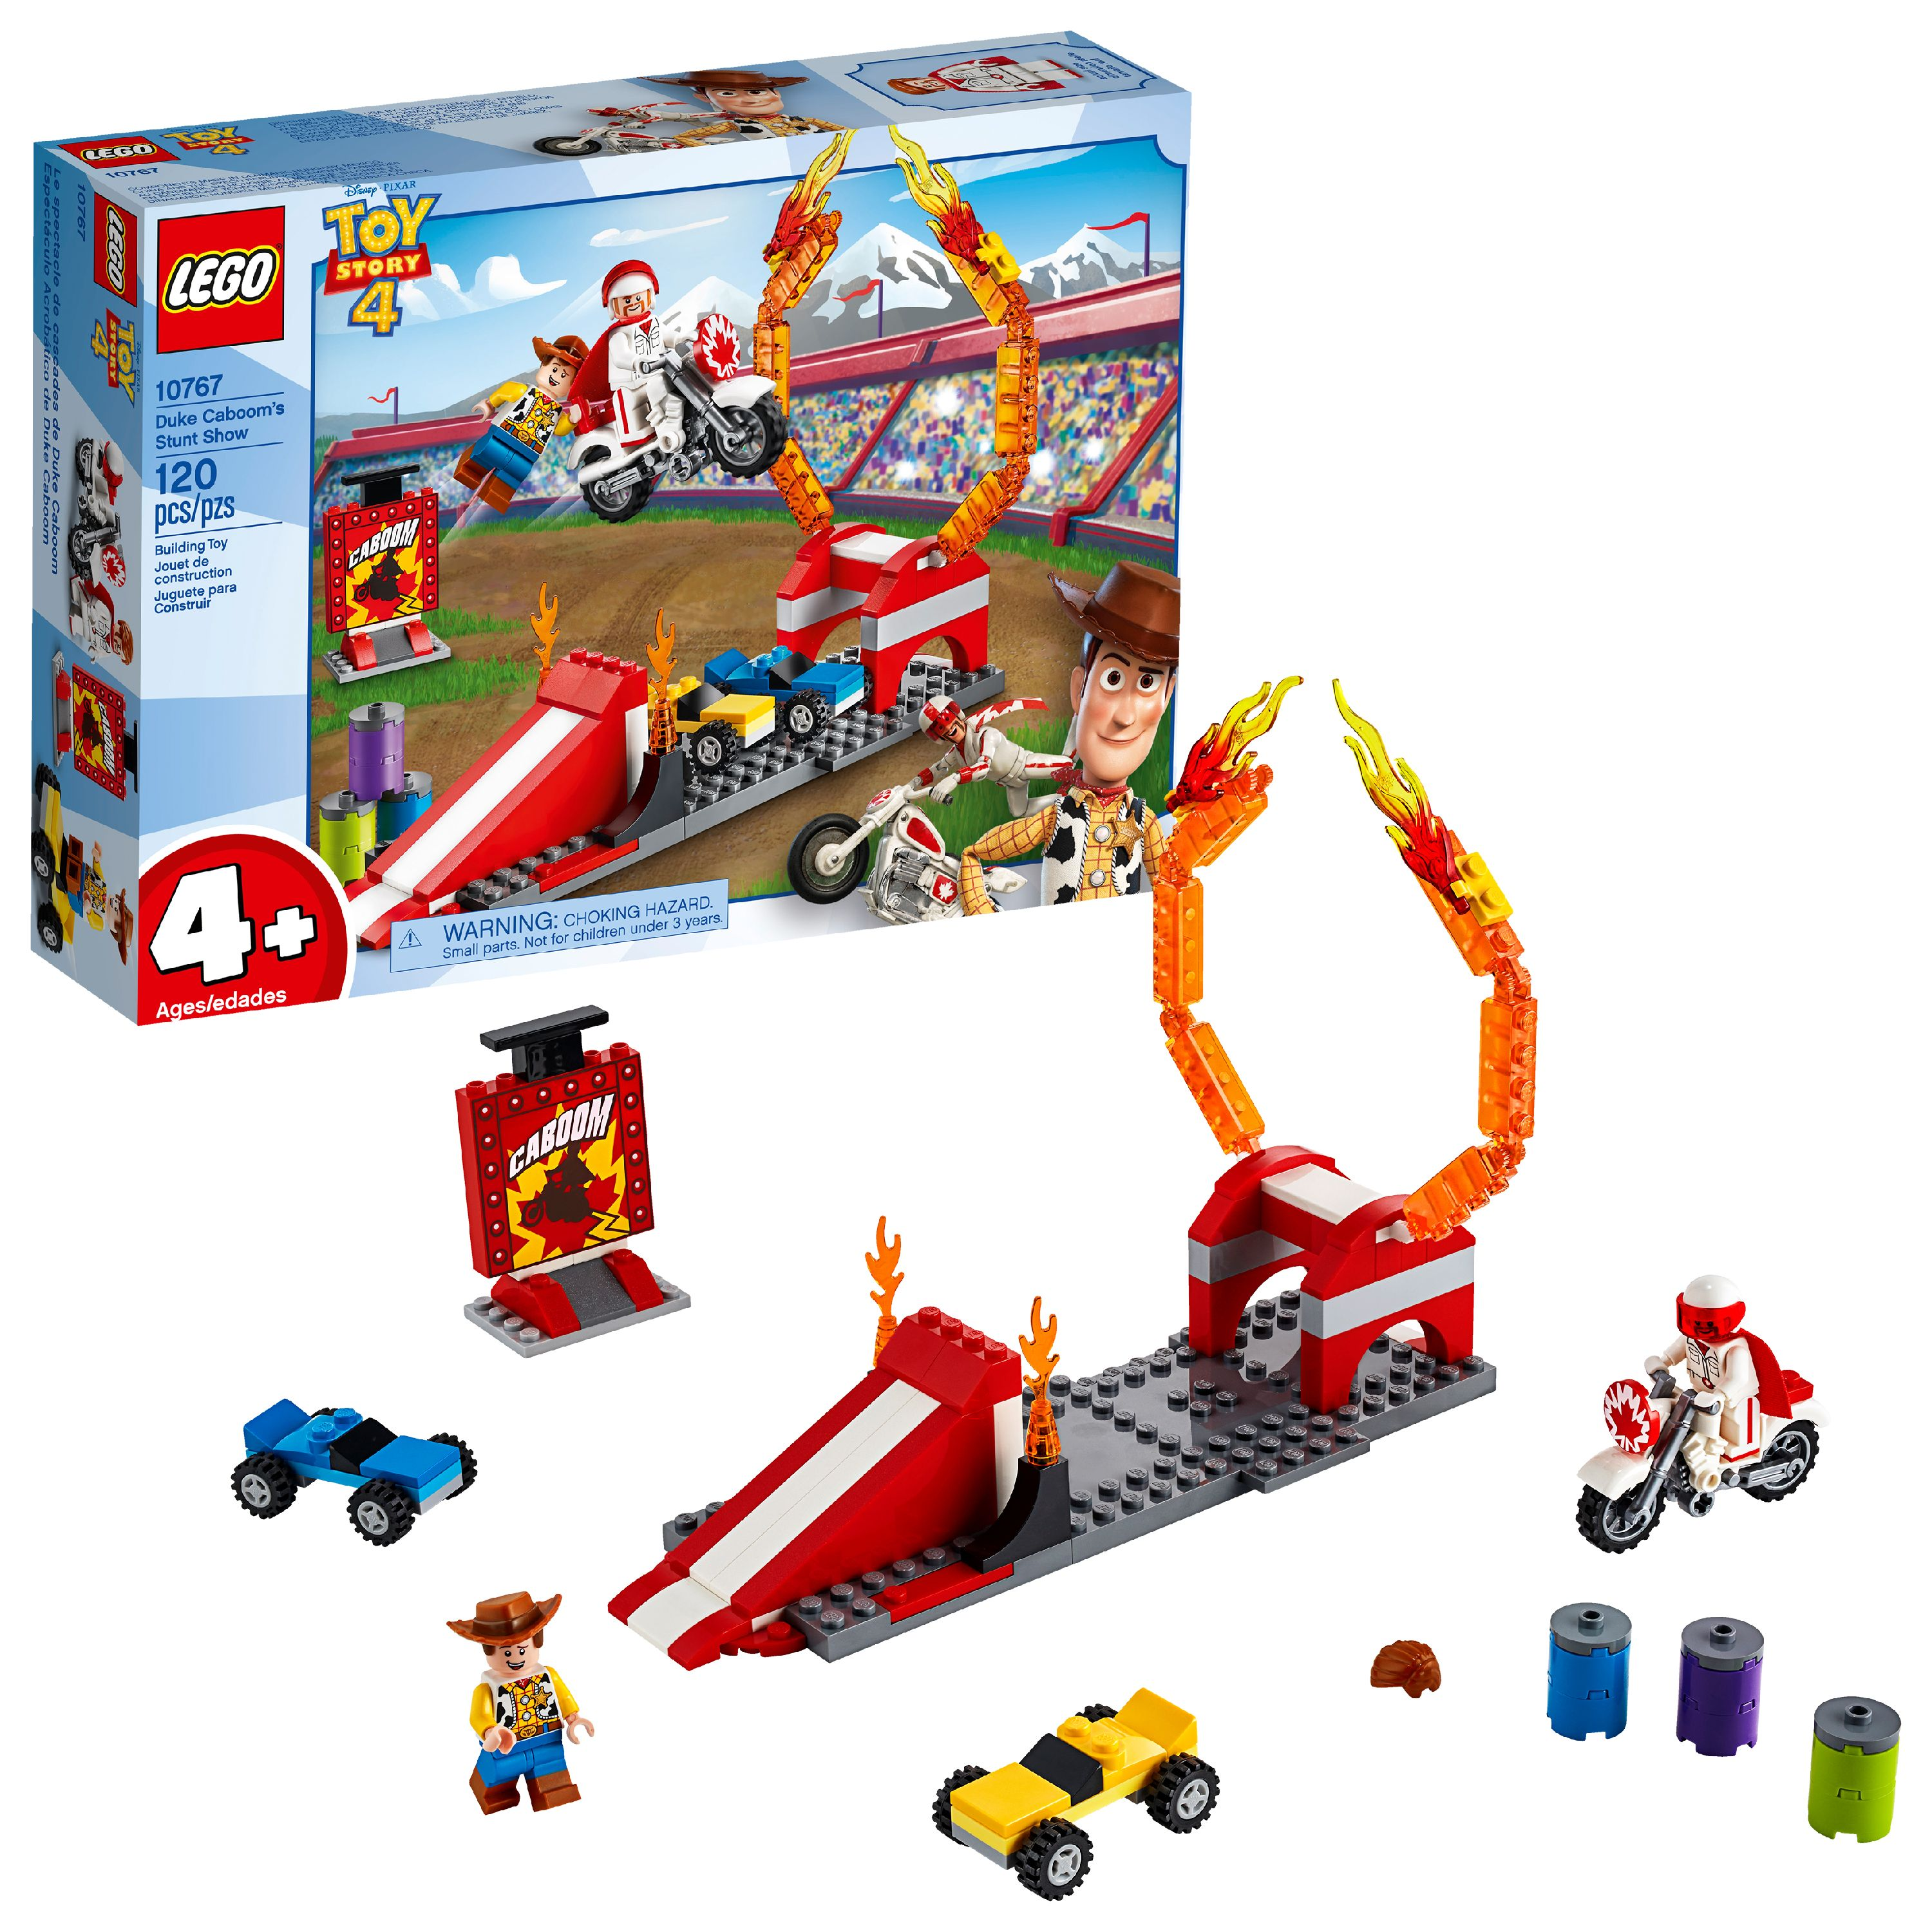 LEGO Toy Story 4 Duke Caboom's...